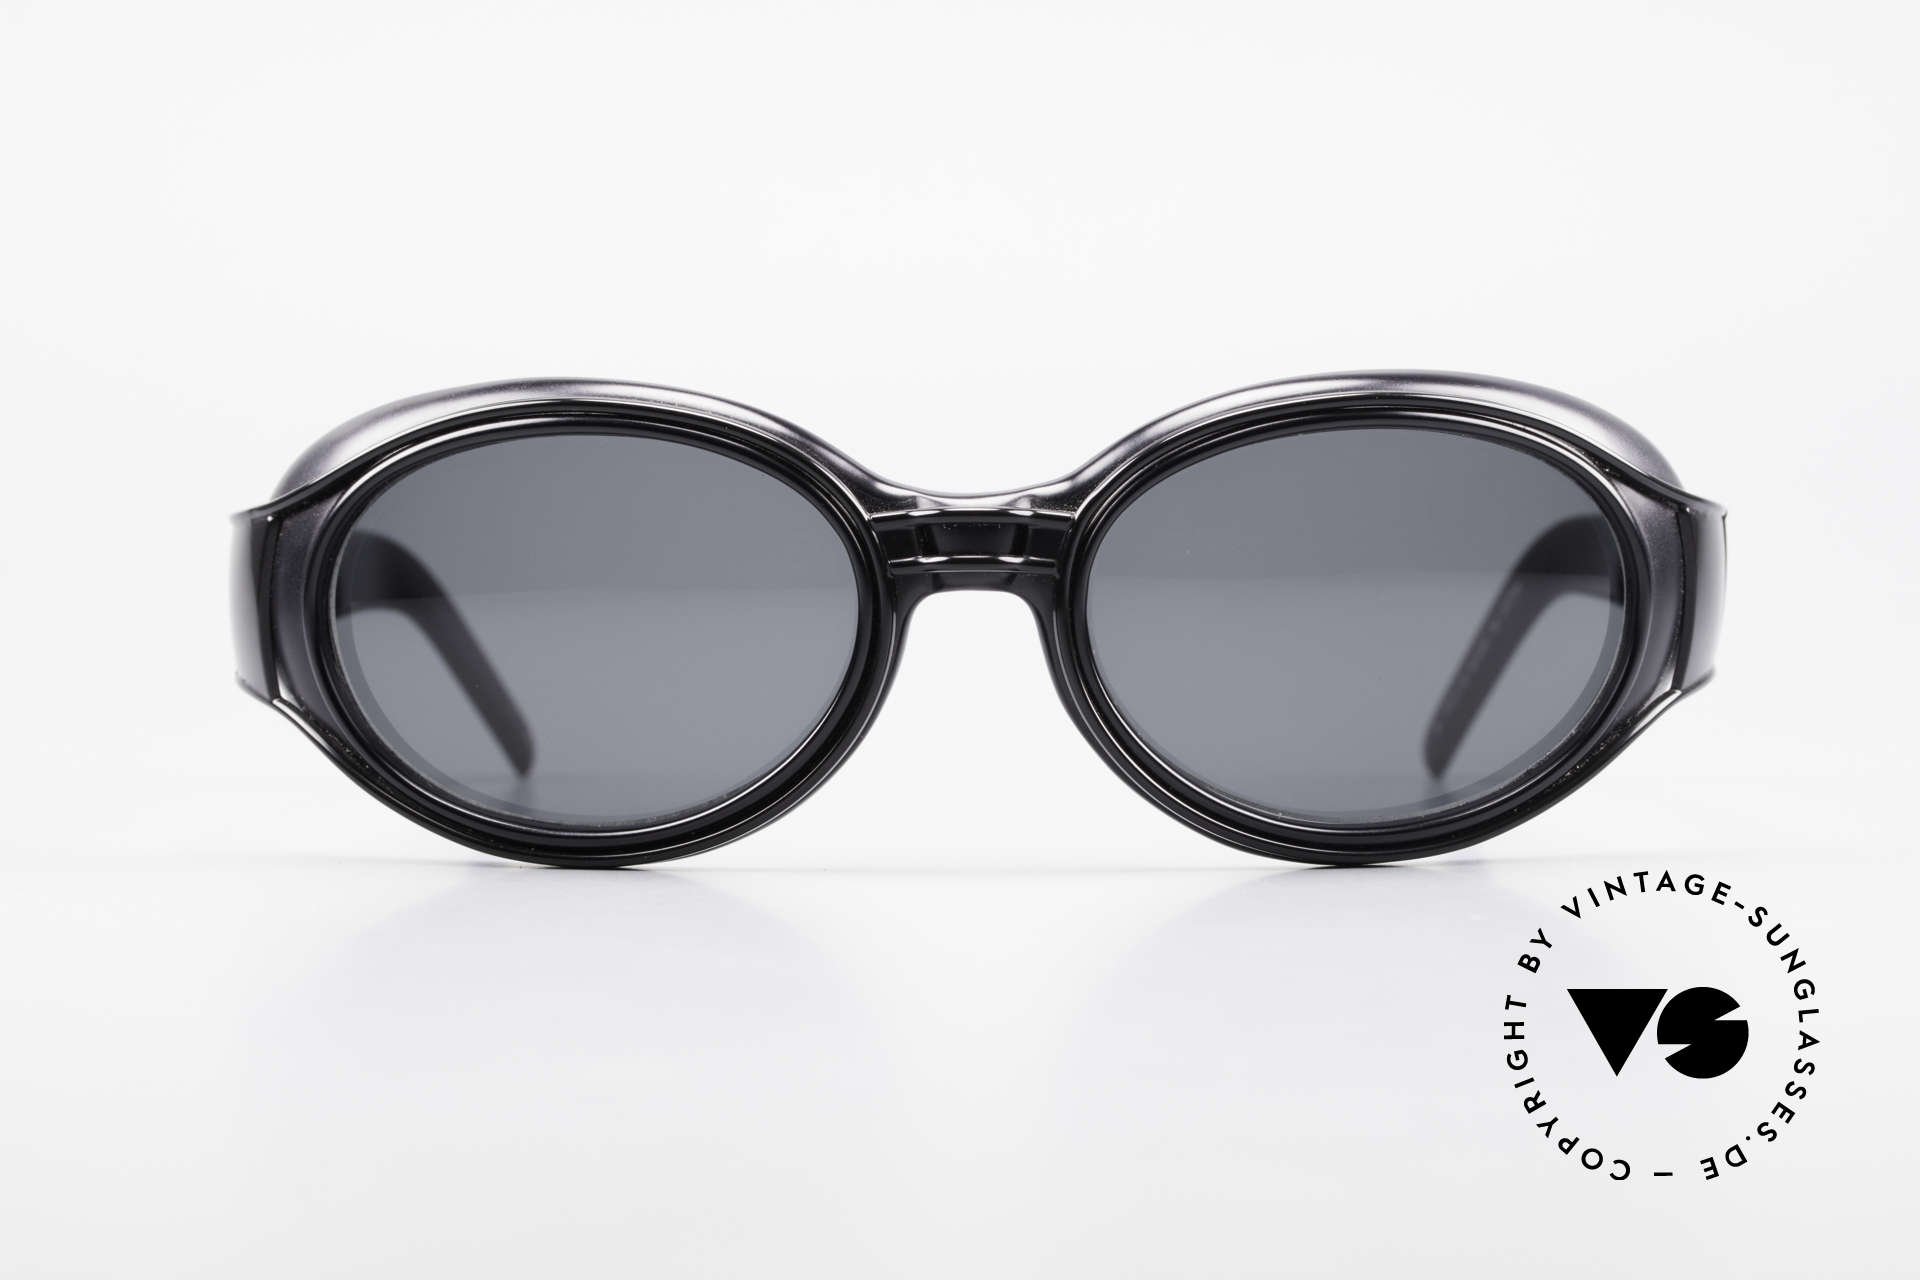 Yohji Yamamoto 52-6202 Sporty XL Designer Sunglasses, industrial frame construction; truly STEAMPUNK style, Made for Men and Women